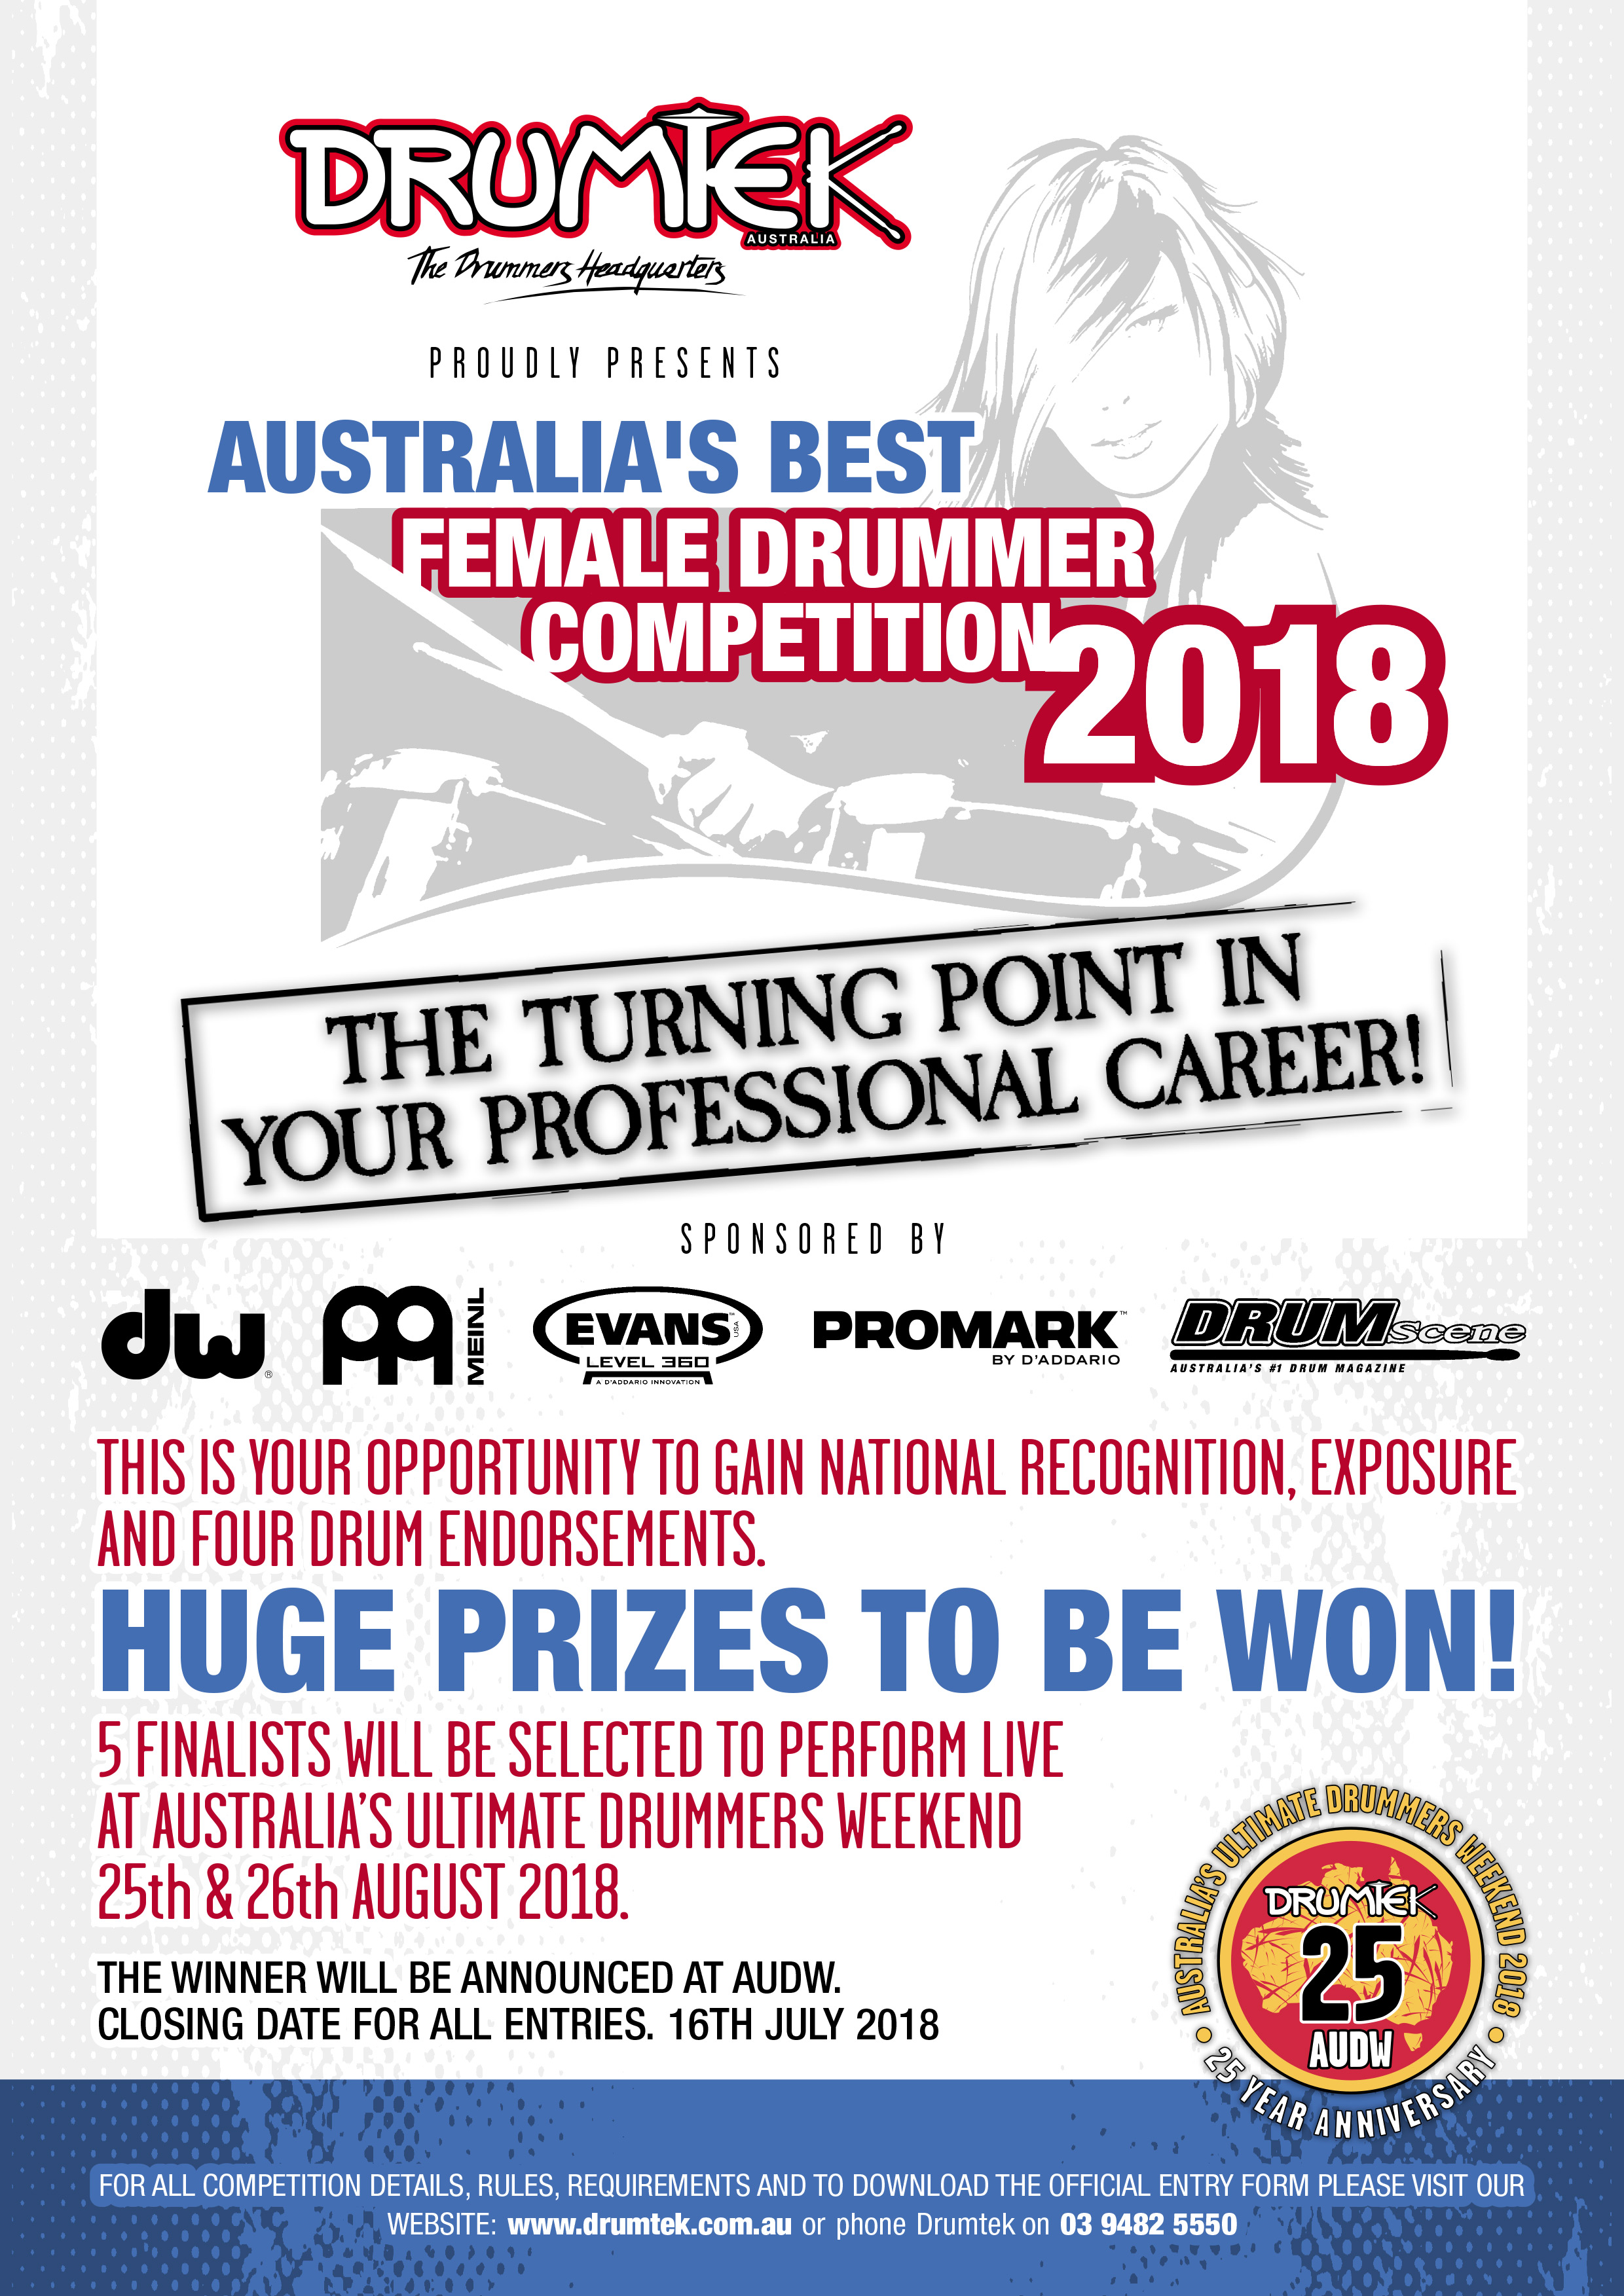 a4-australia-s-best-female-drummer-competition-2018-a4-poster.jpg